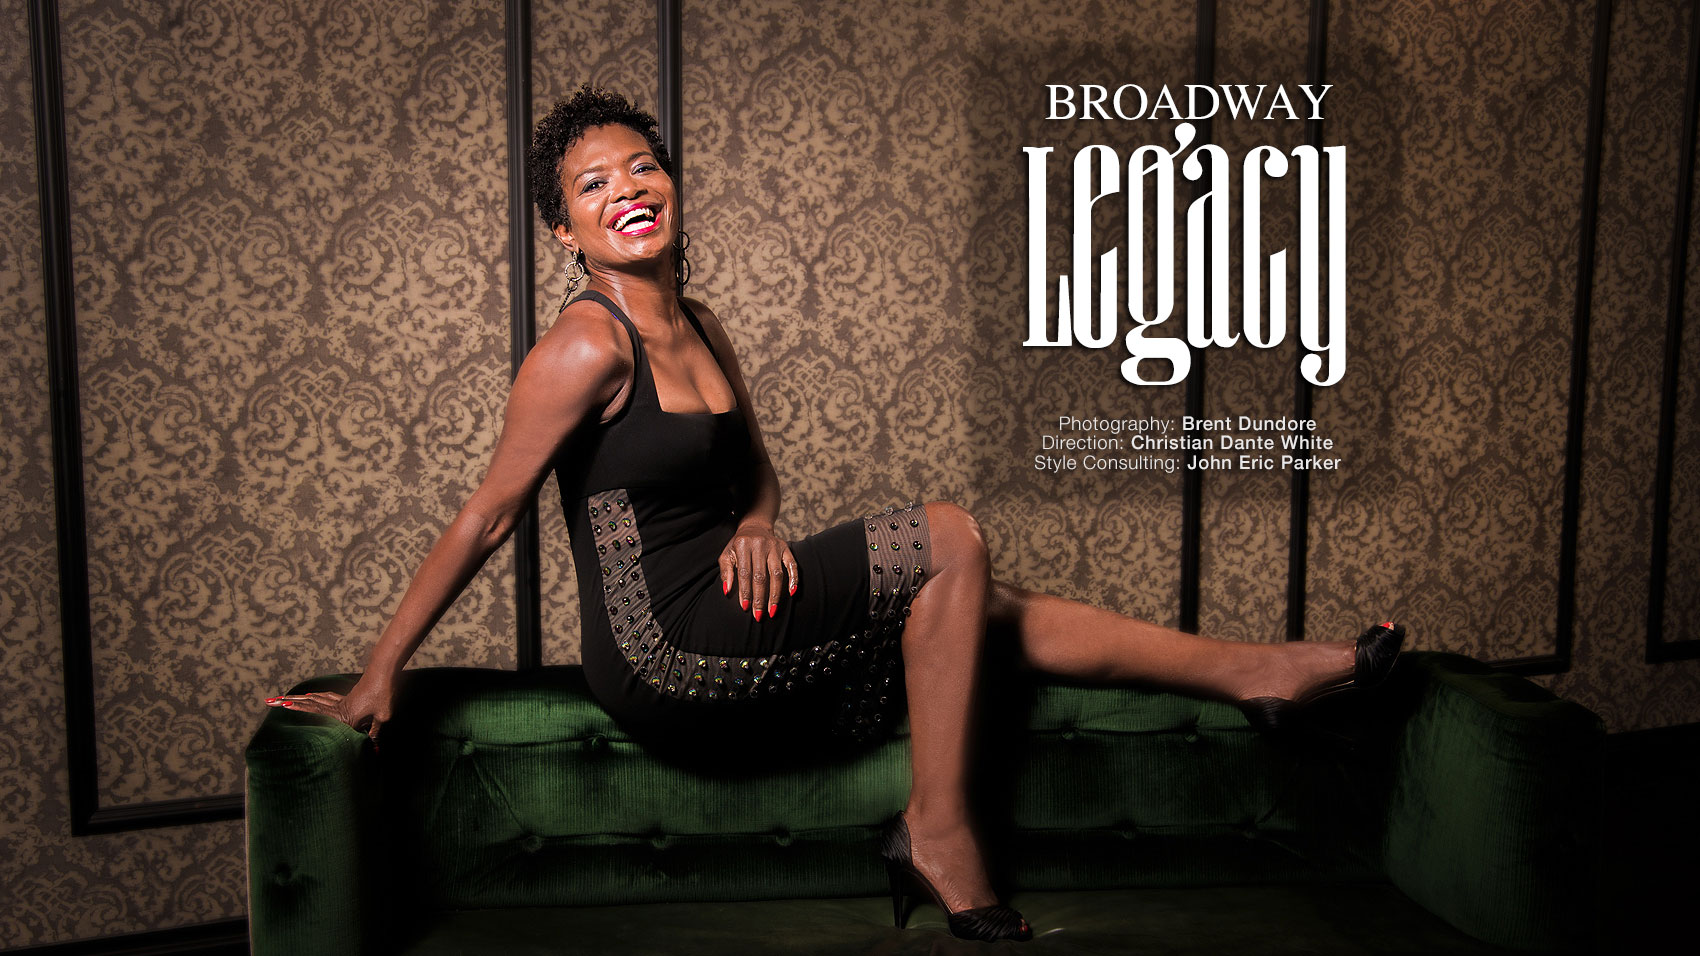 Broadway Legacy 4.0 - Brent Dundore Photography